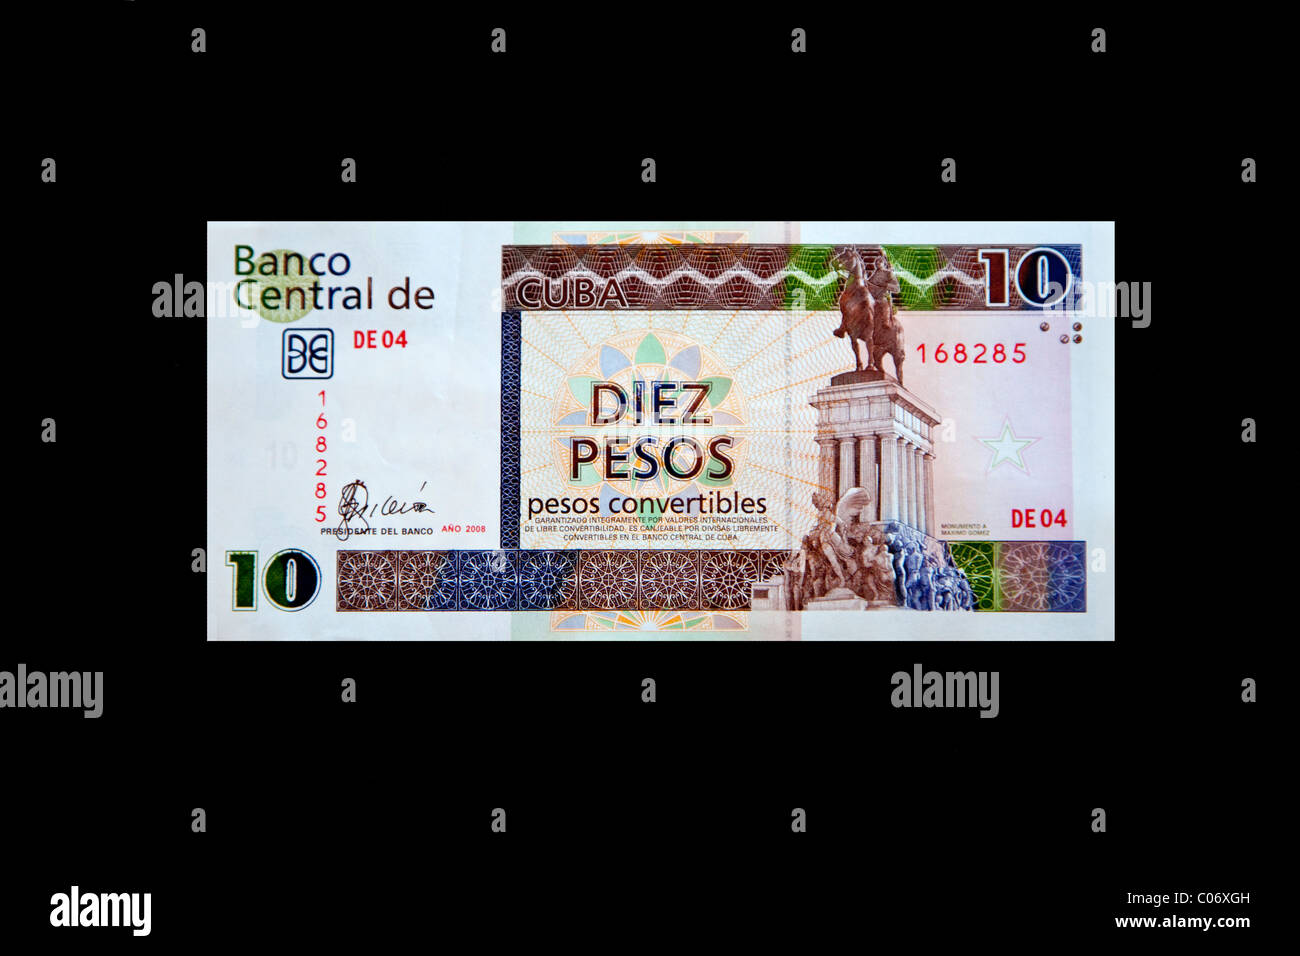 Cuba, Havana. 'Pesos Convertibles', the pesos used by tourists in Cuba. This is a 10 peso note. - Stock Image